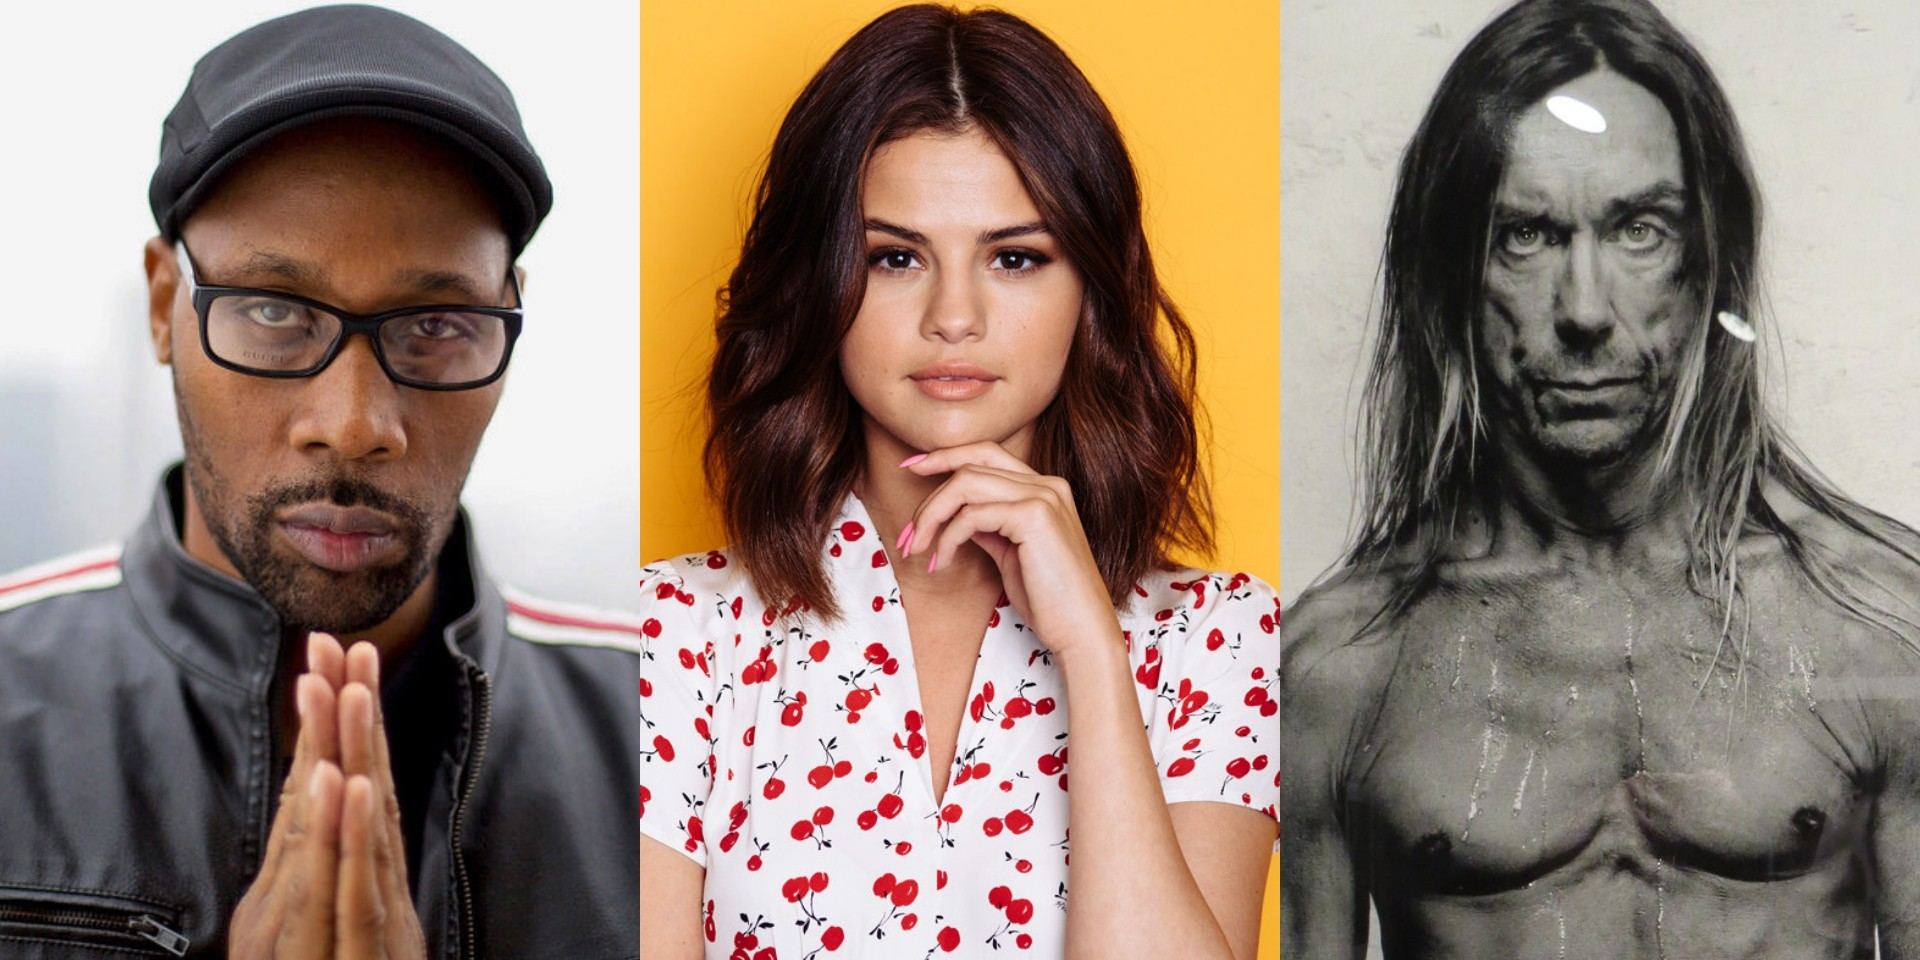 RZA, Selena Gomez, Iggy Pop and more to star in epic zombie film, The Dead Don't Die